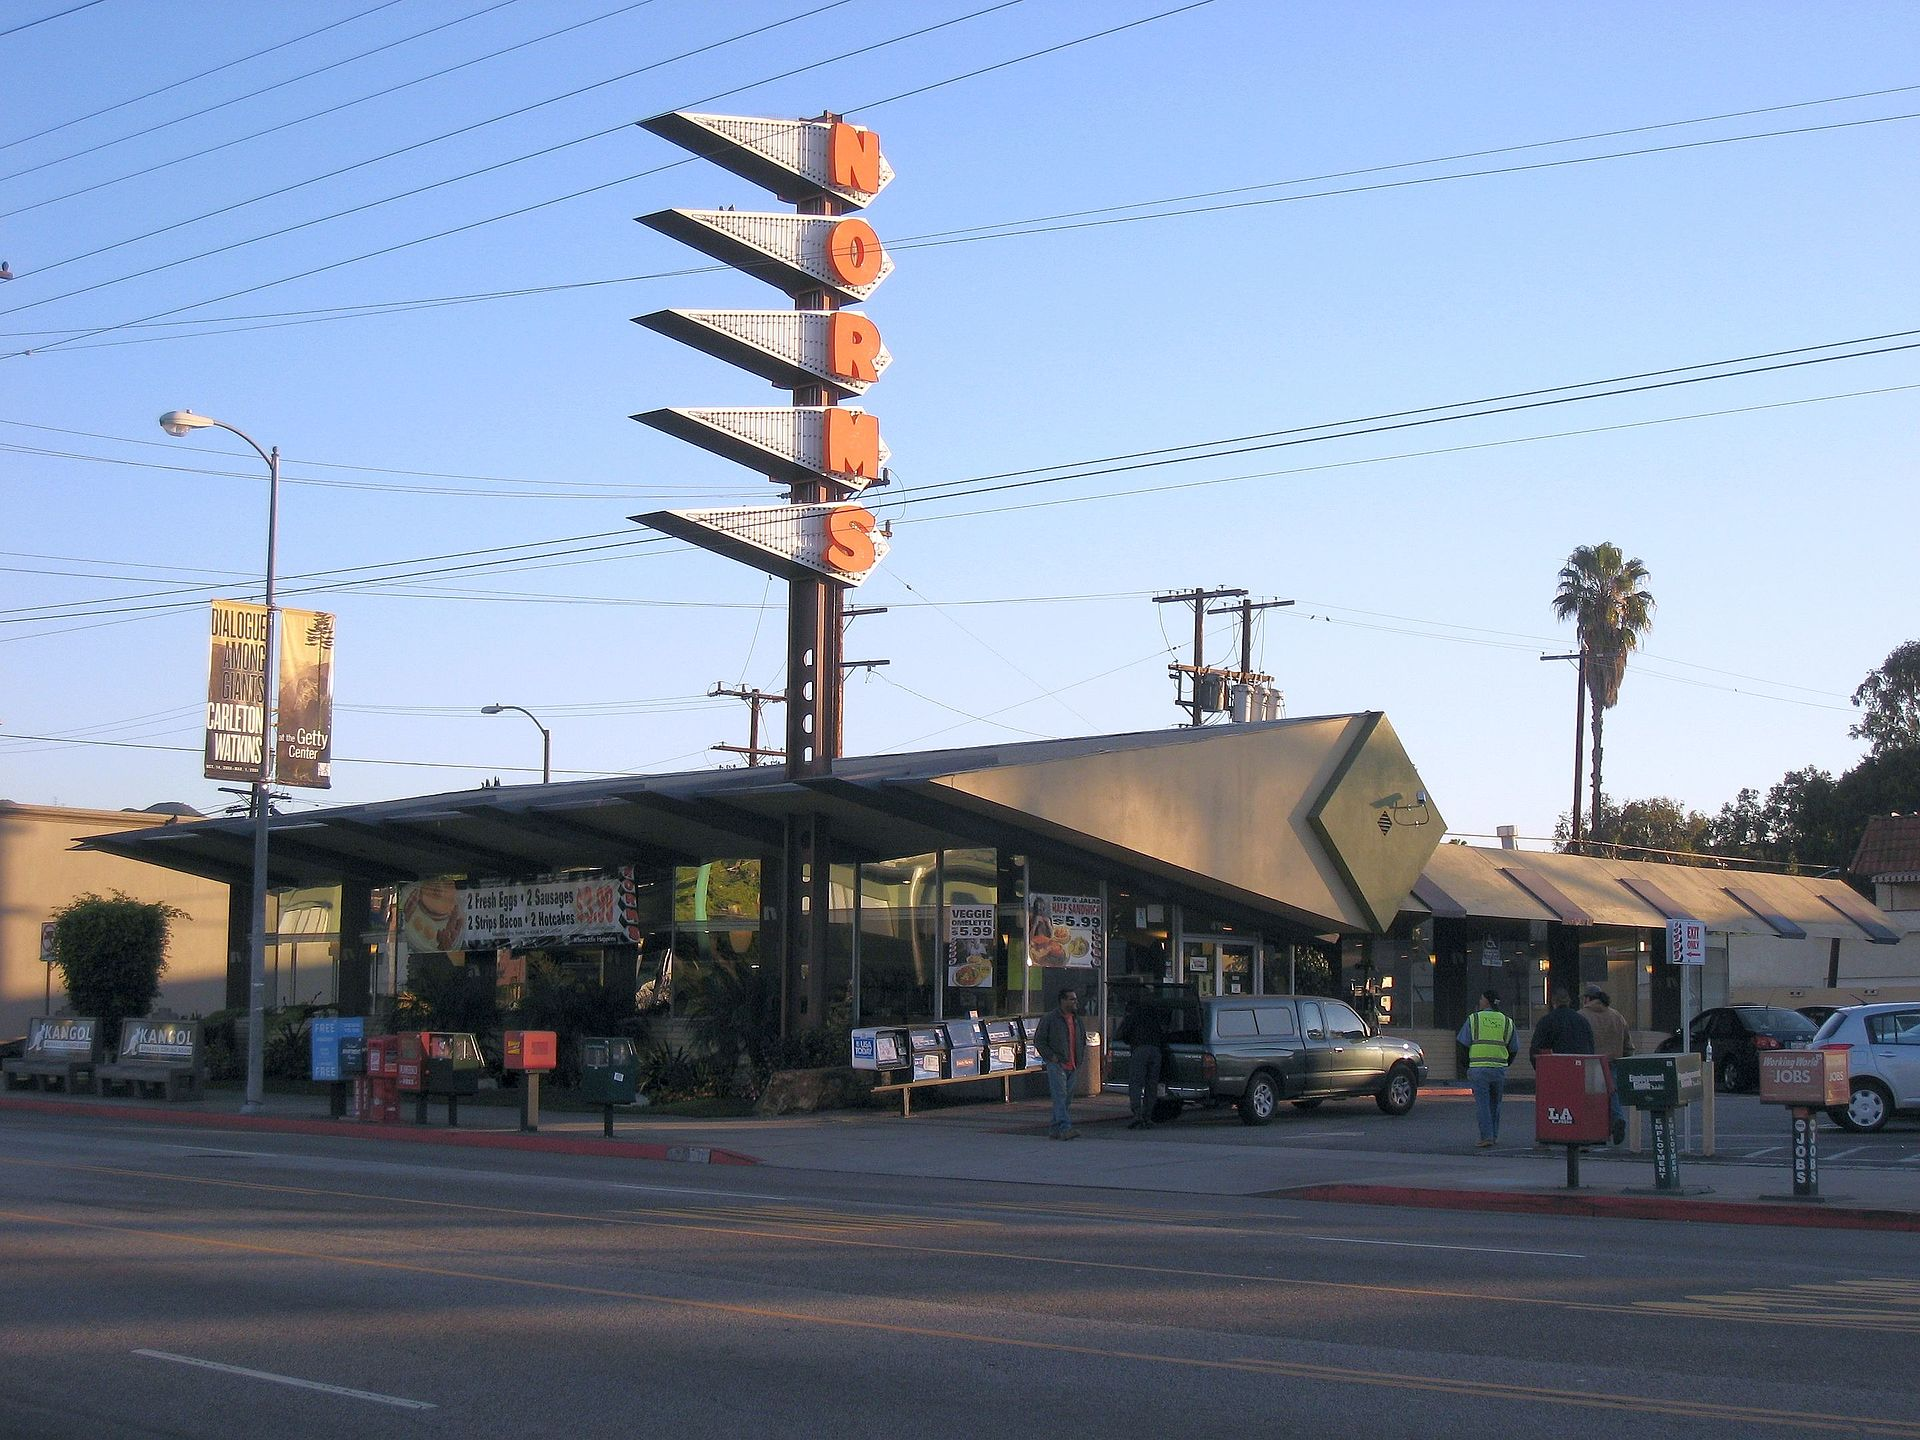 Norms Restaurants - Wikipedia